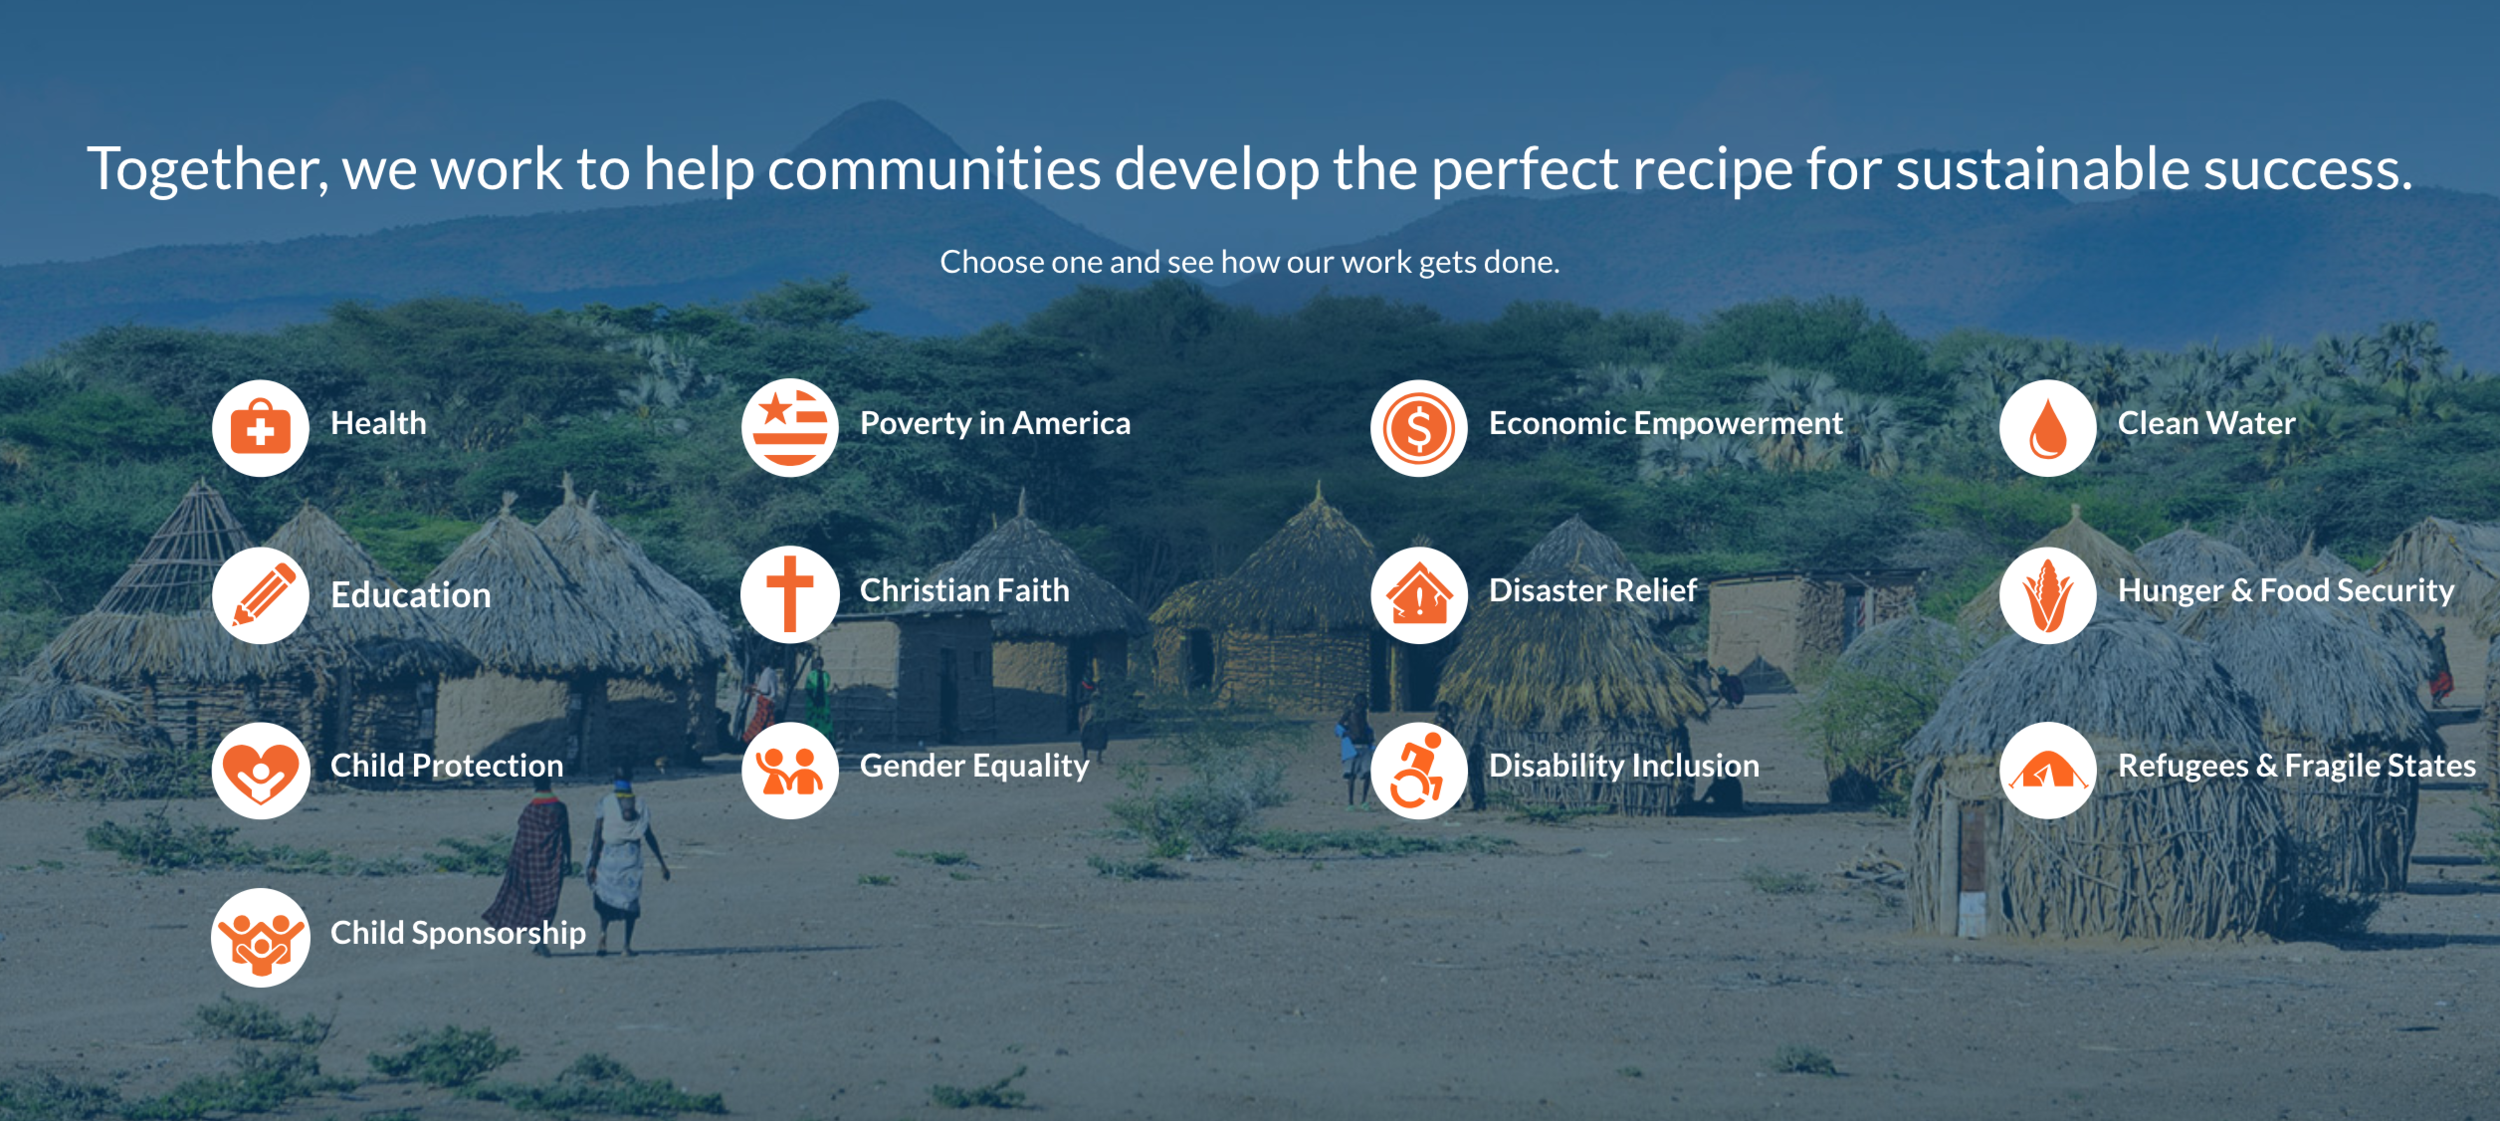 Find out more about how World Vision helps strengthen communities  here .